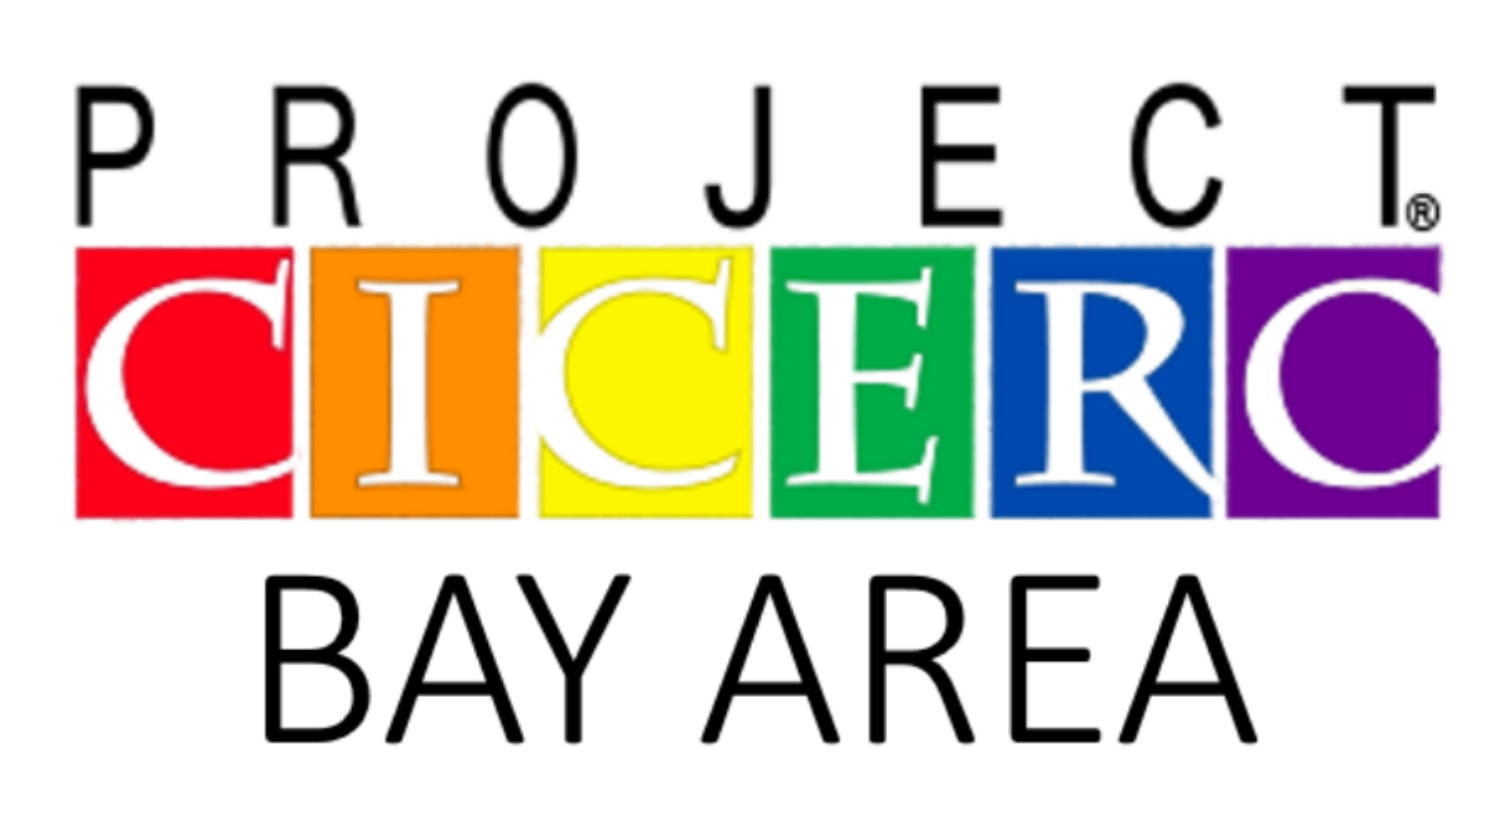 Project Cicero Bay Area